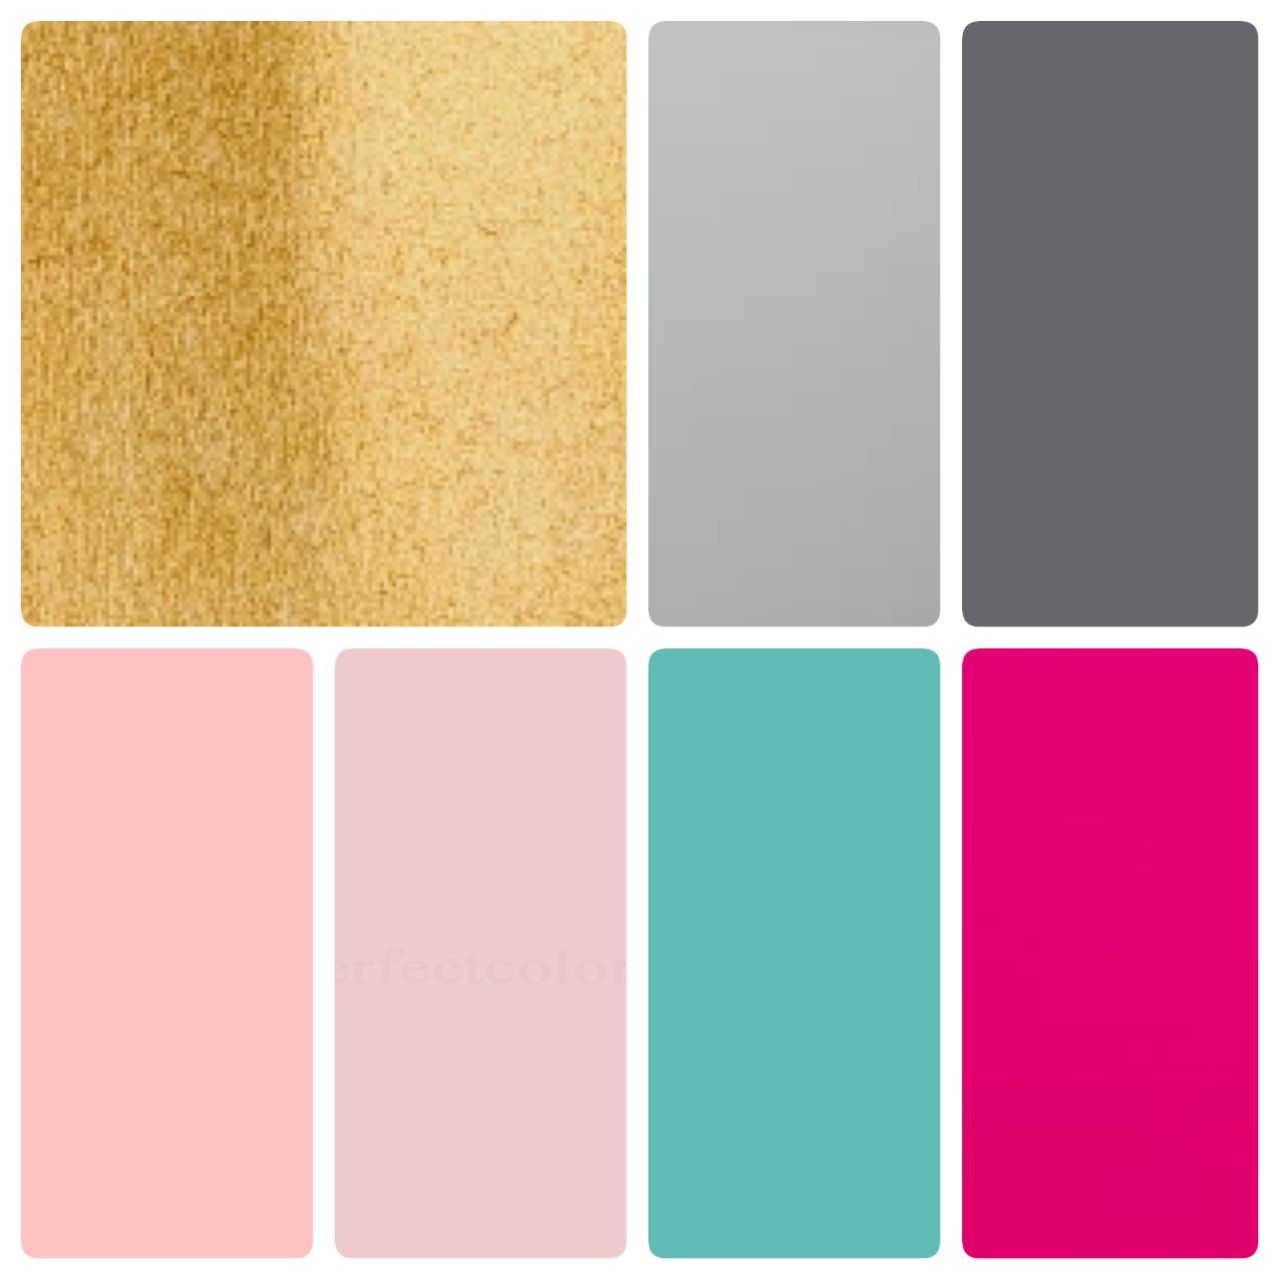 Colour Palette Blush Pink Hot Teal Gold Light And Dark Grey